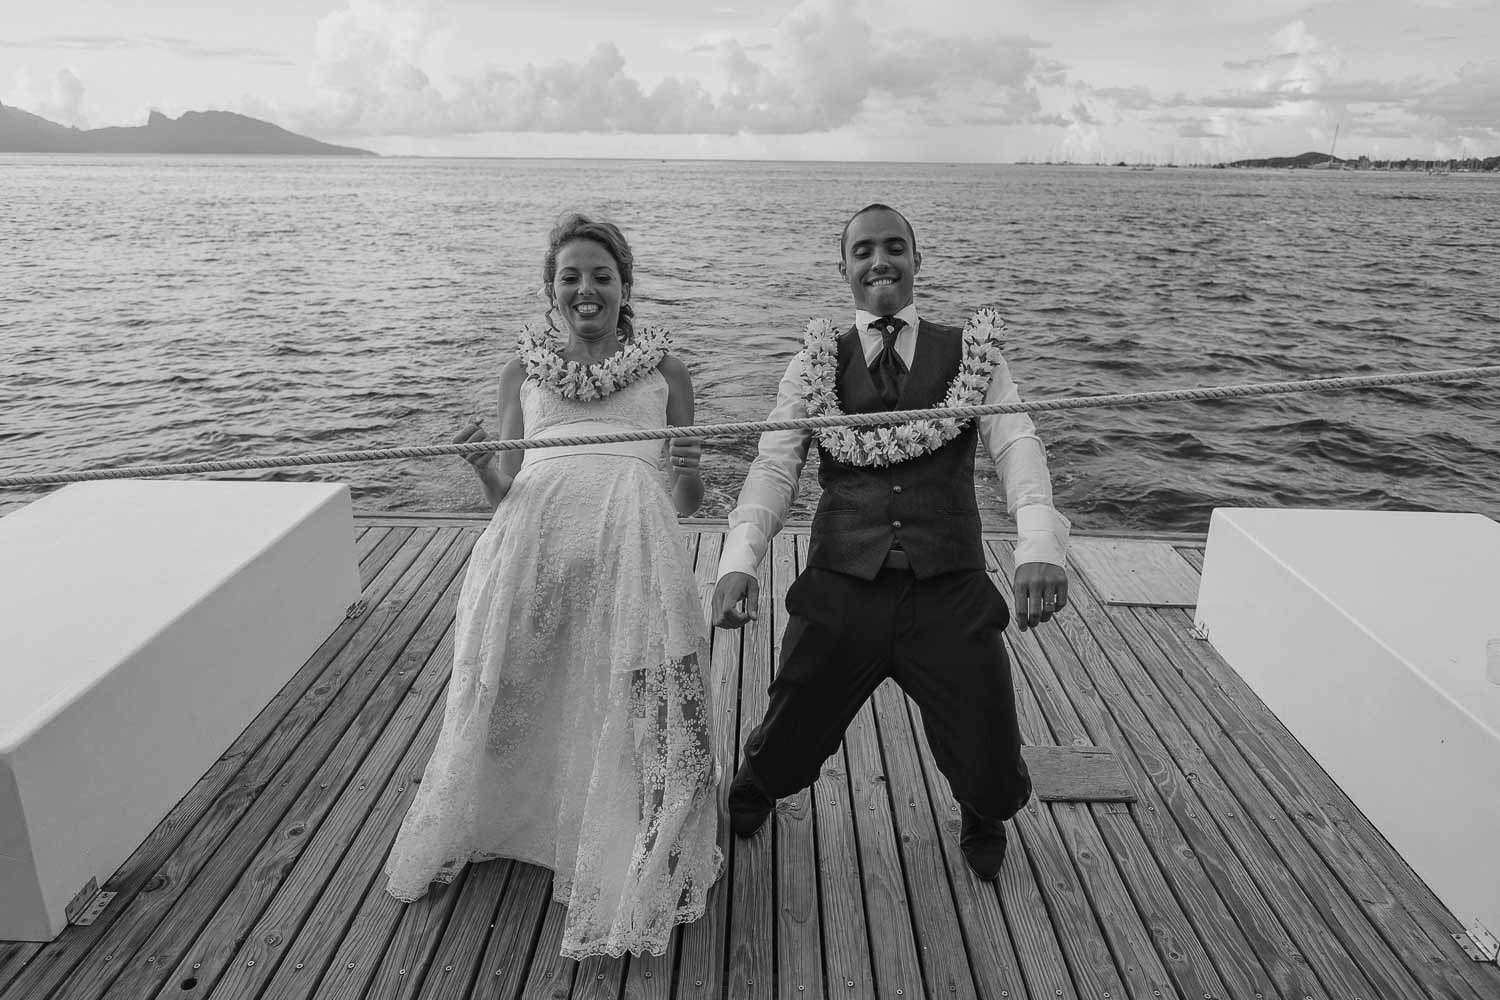 bride and groom doing the limbo on a houseboat in tahiti